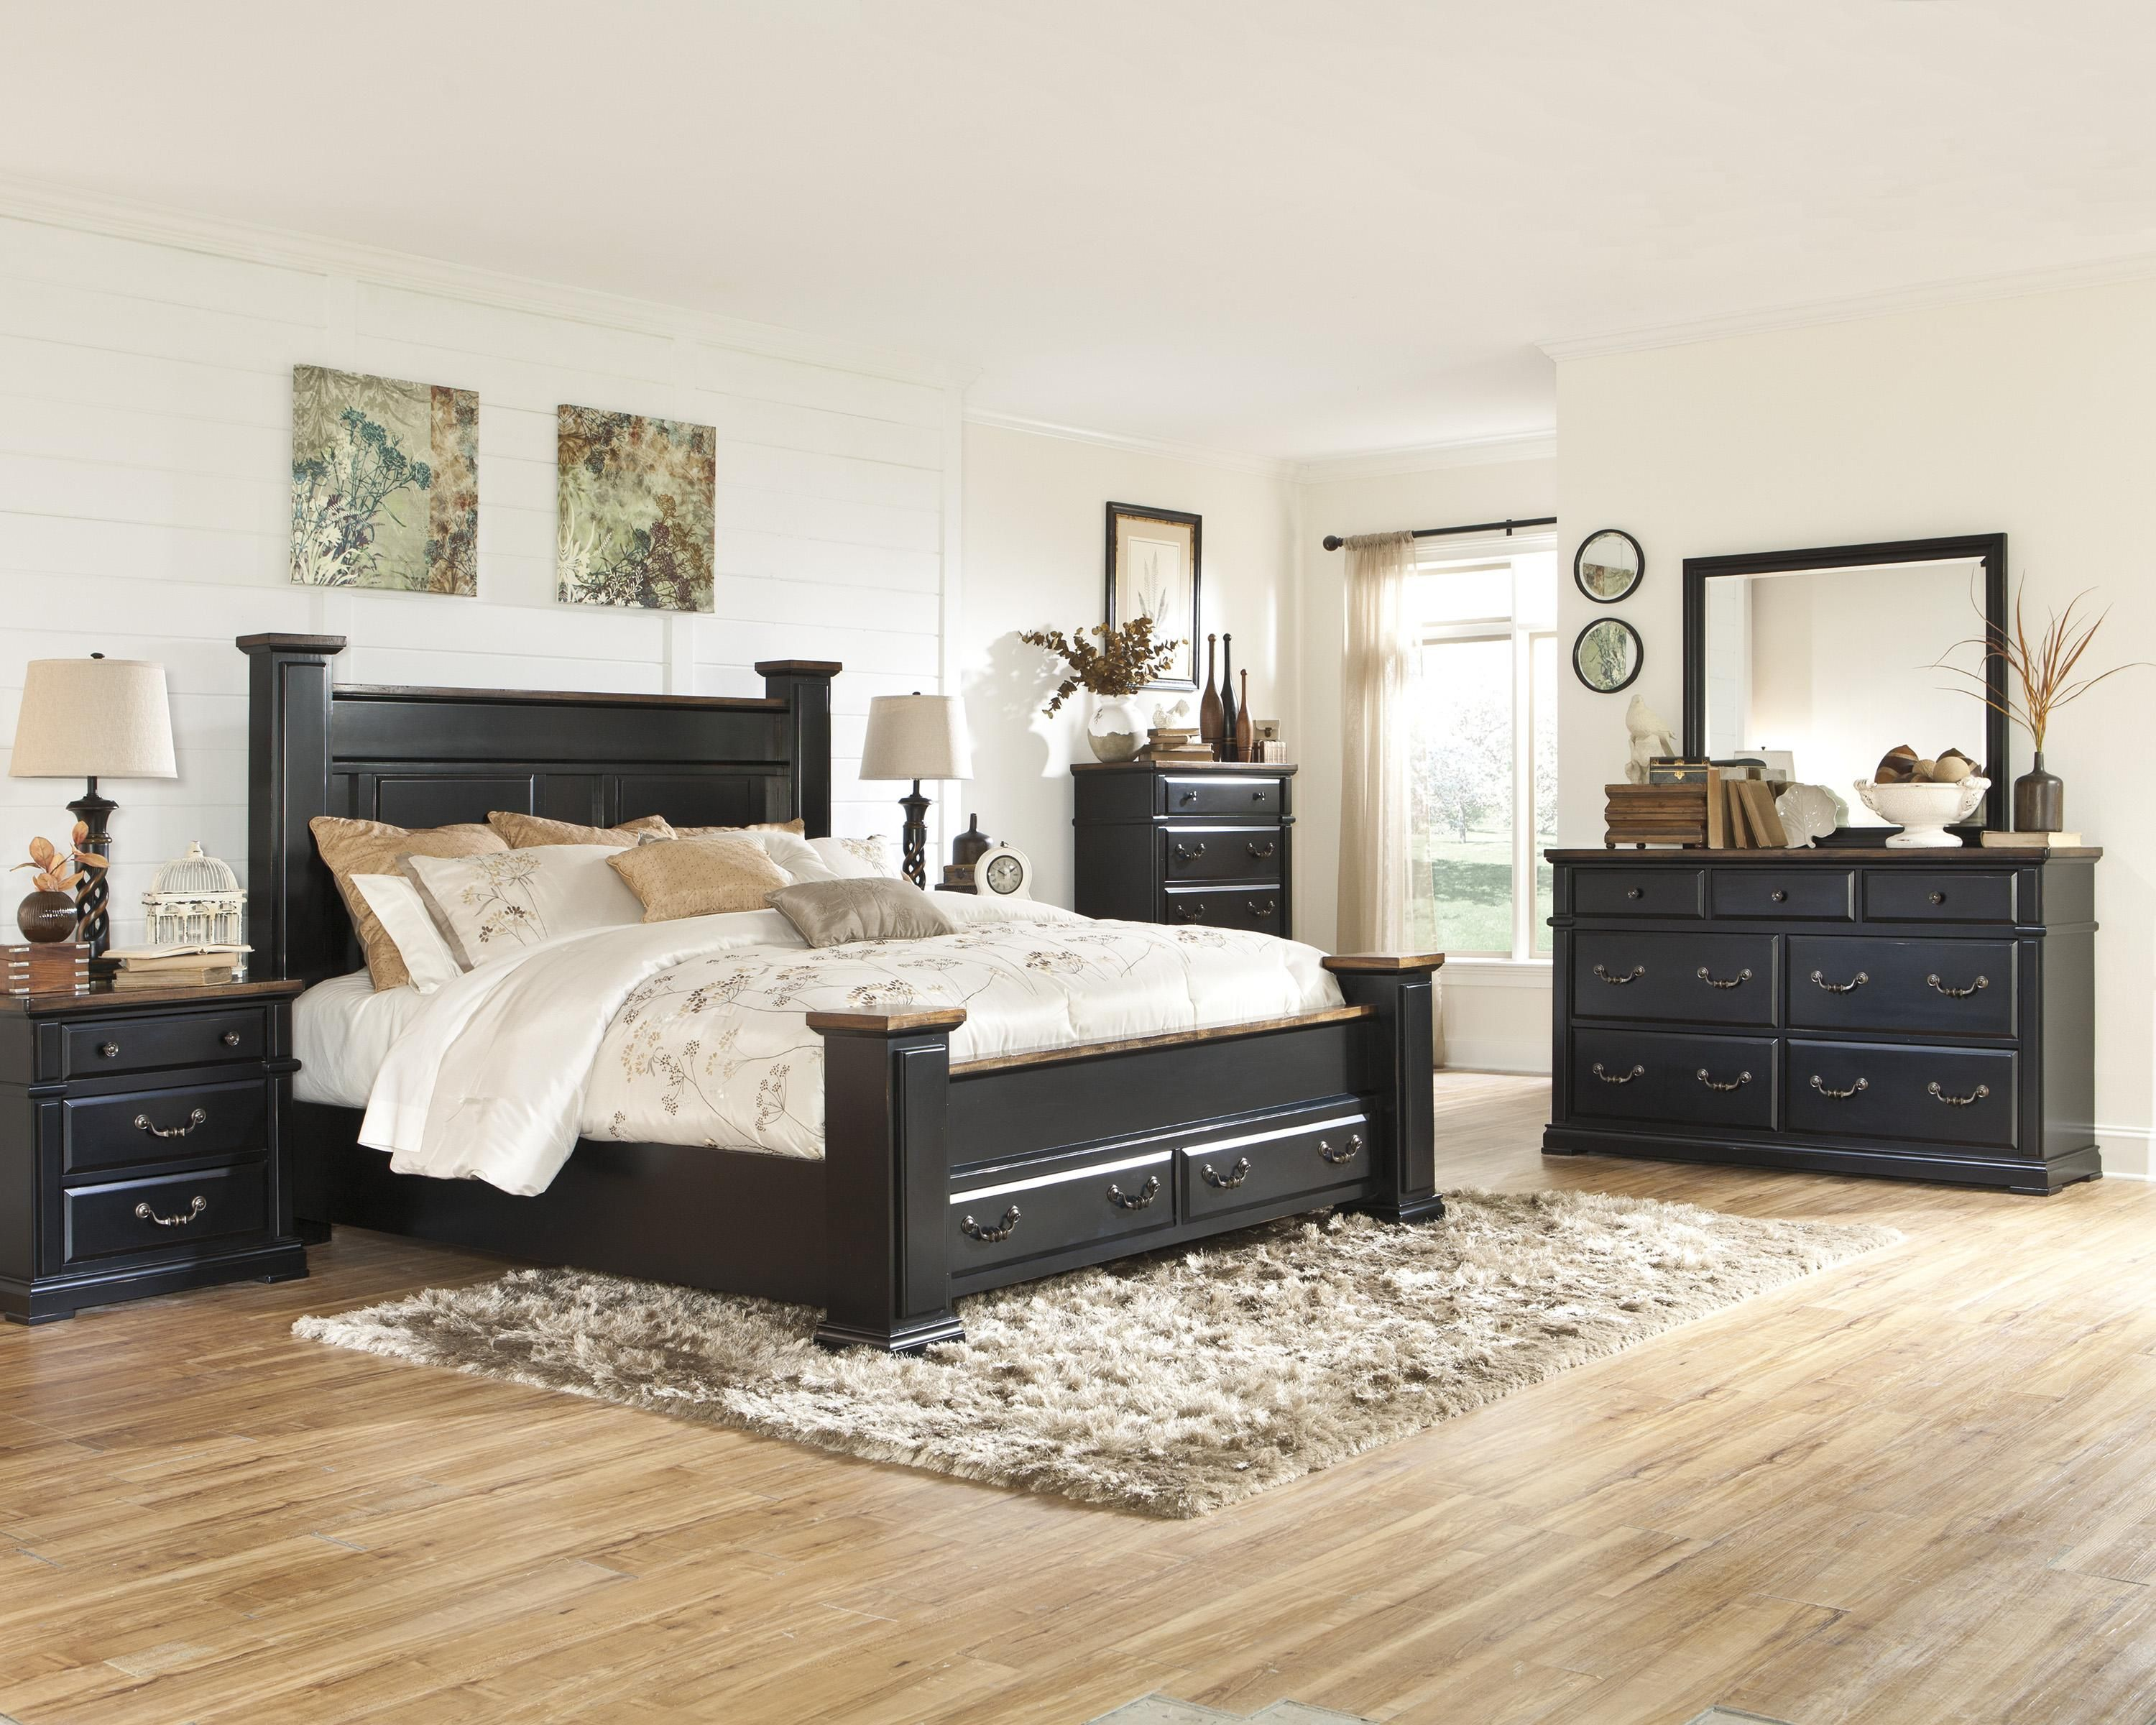 Master bedroom nightstand decor  The Breen master bedroom collection is full of rustic design touches